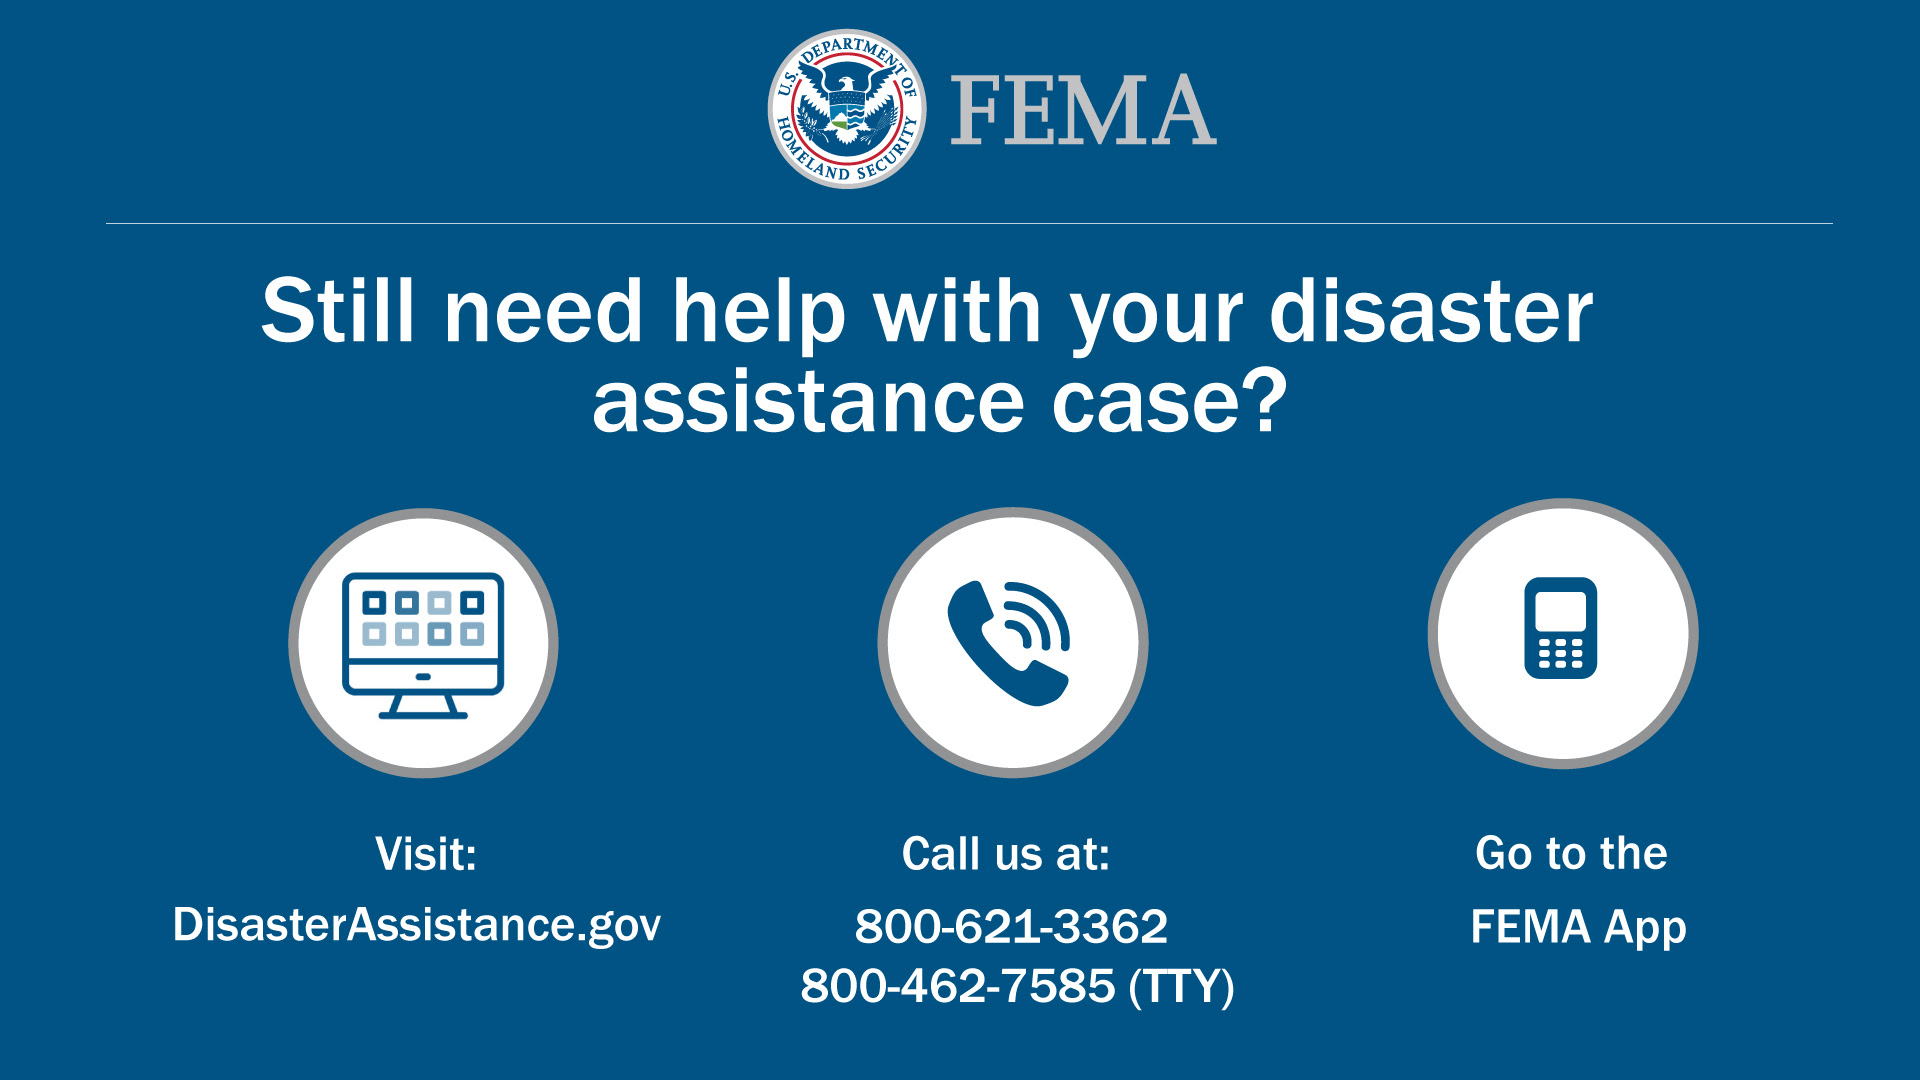 May 4th Deadline to Apply with FEMA